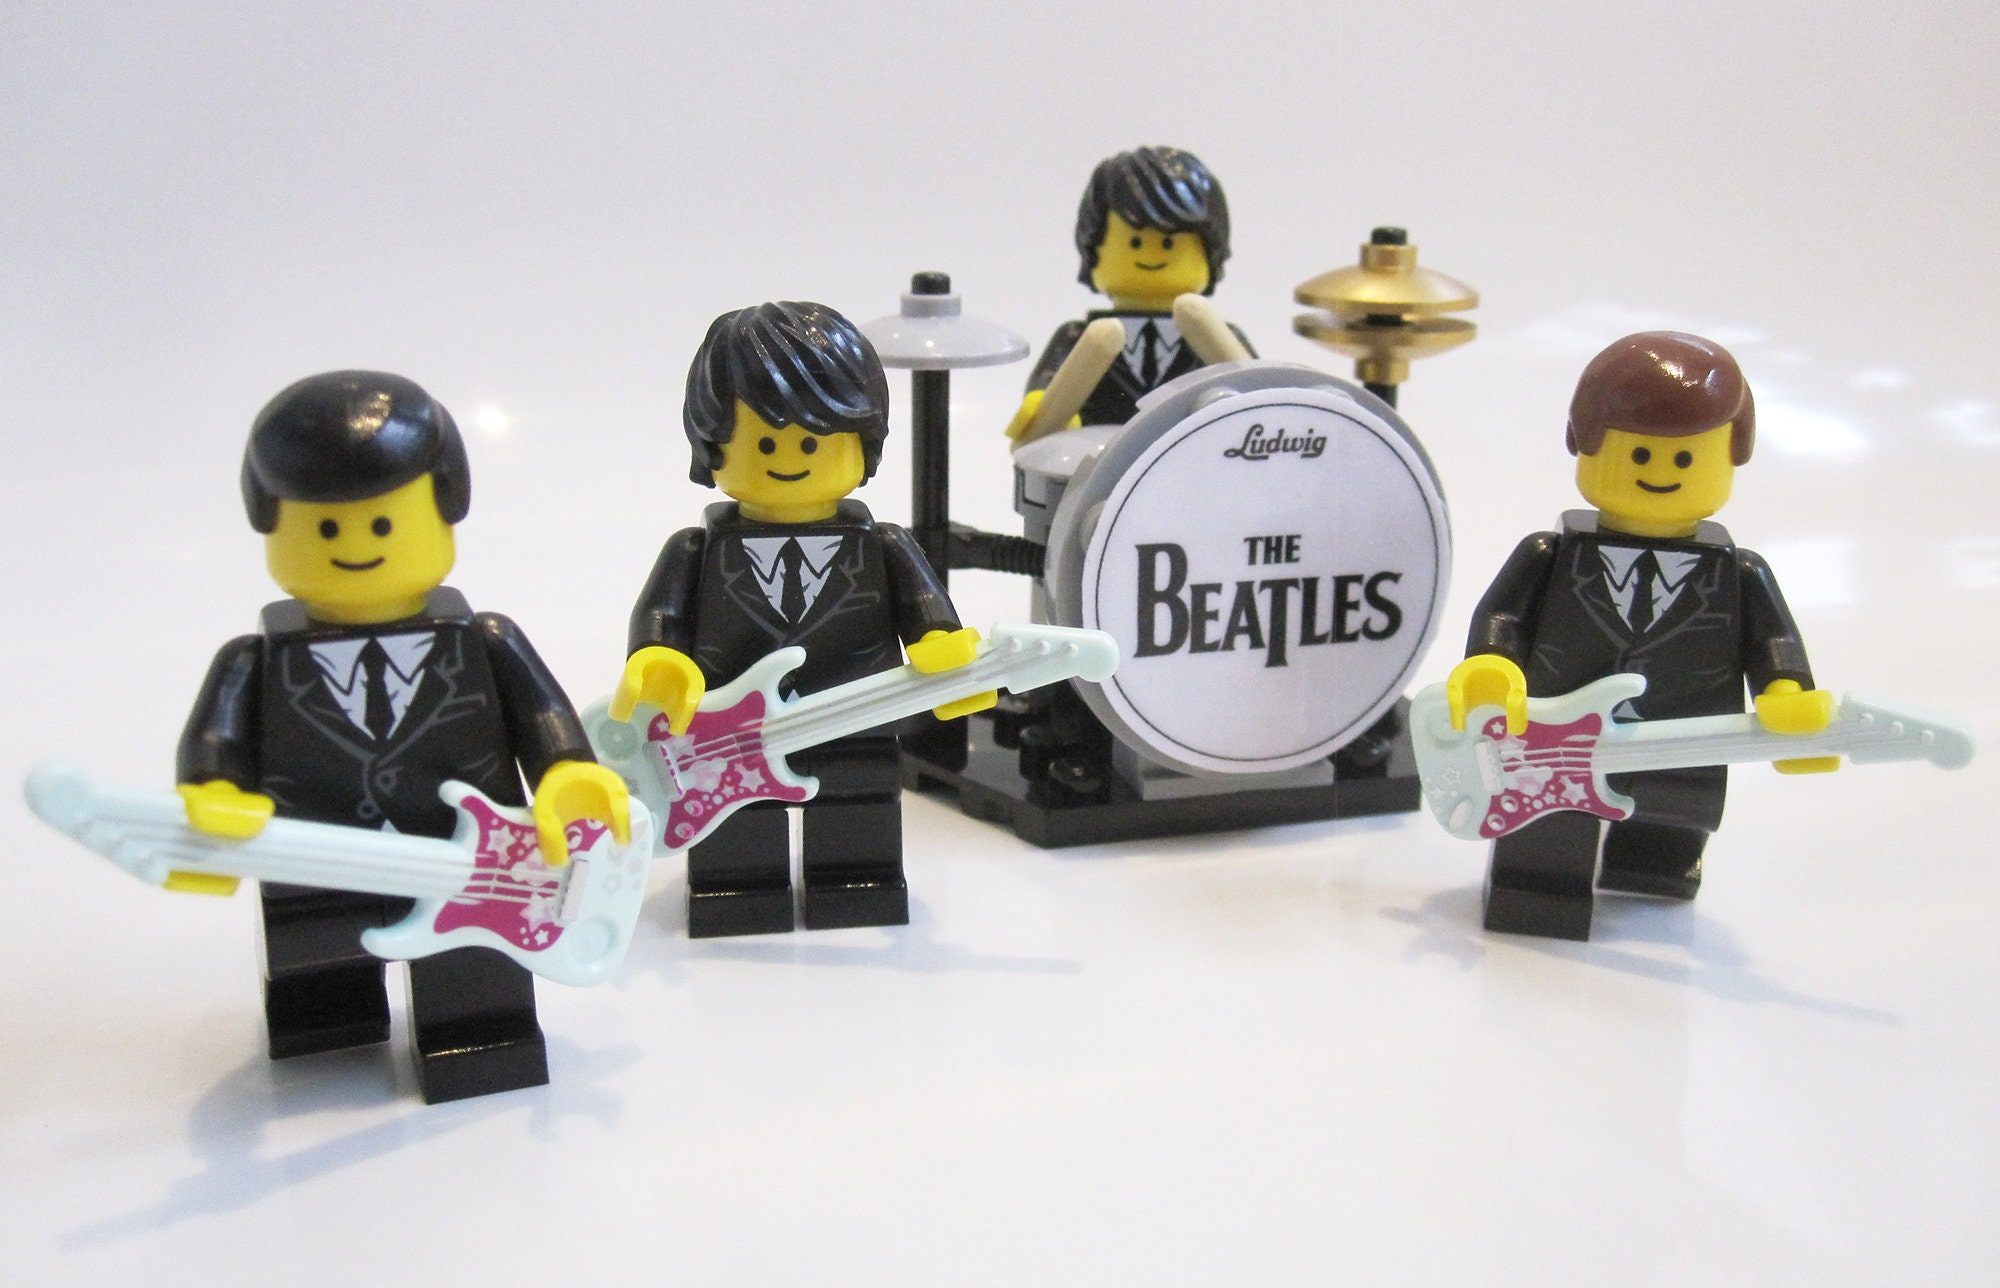 The Beatles Lego minifigures Band with drum kit guitars Fab Four Abbey Road Studios Christmas Birthday gift idea GENUINE LEGO PIECES